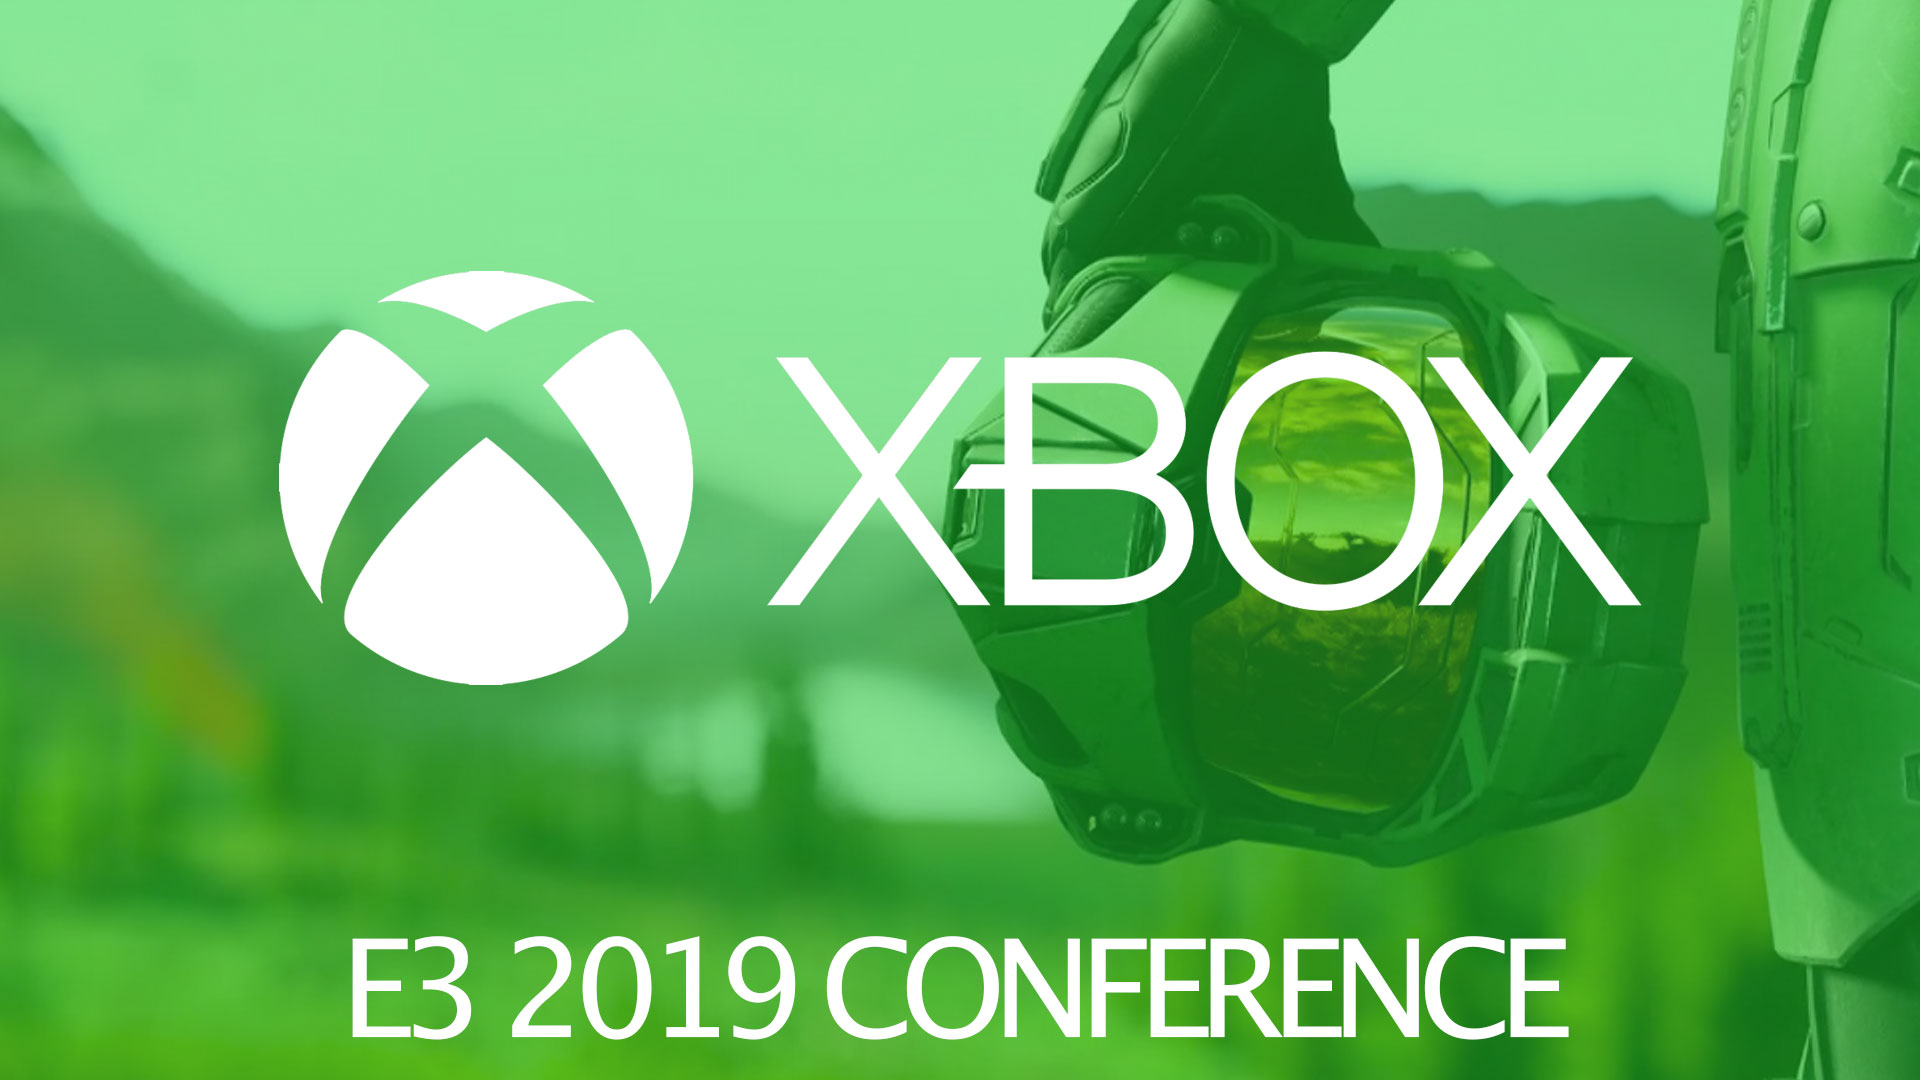 Xbox E3 2019 Recap: Best of Microsoft Xbox at E3 2019 | GamesRadar+